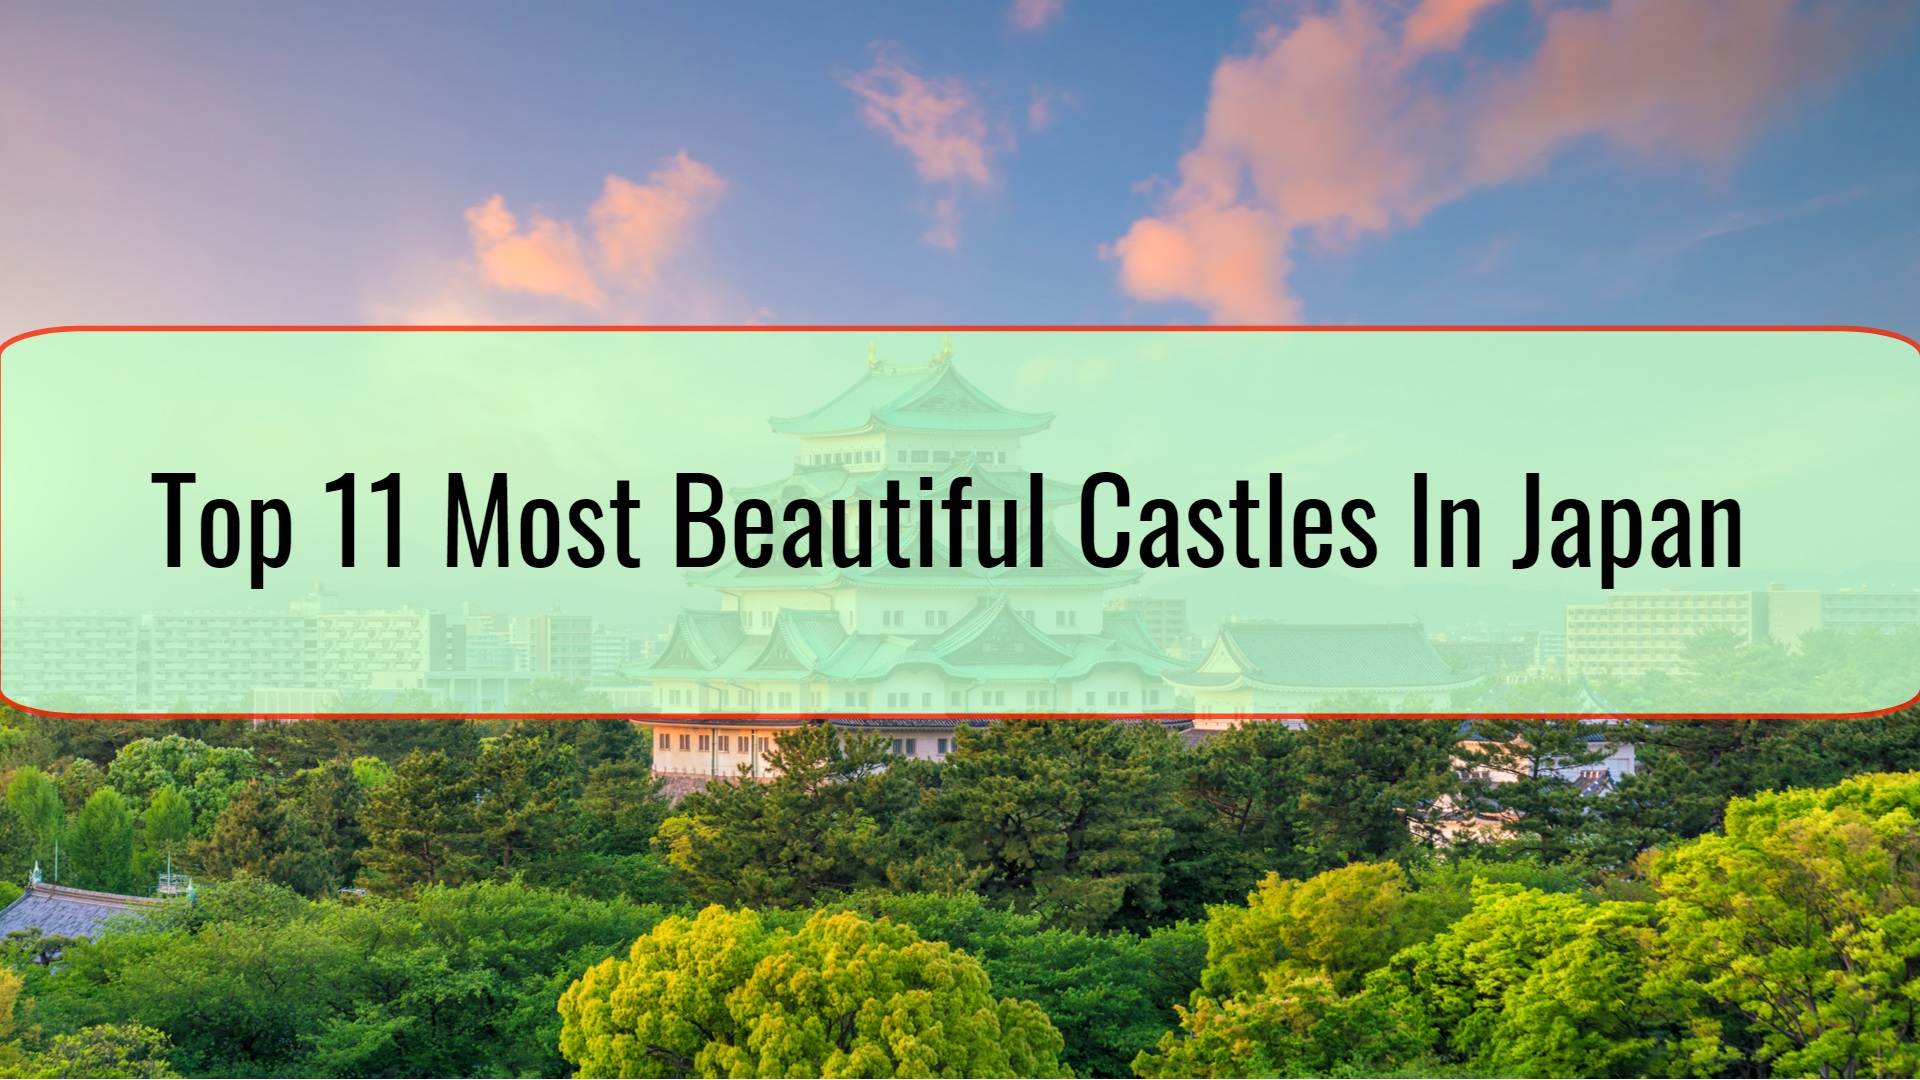 Top 11 Most Beautiful Castles In Japan